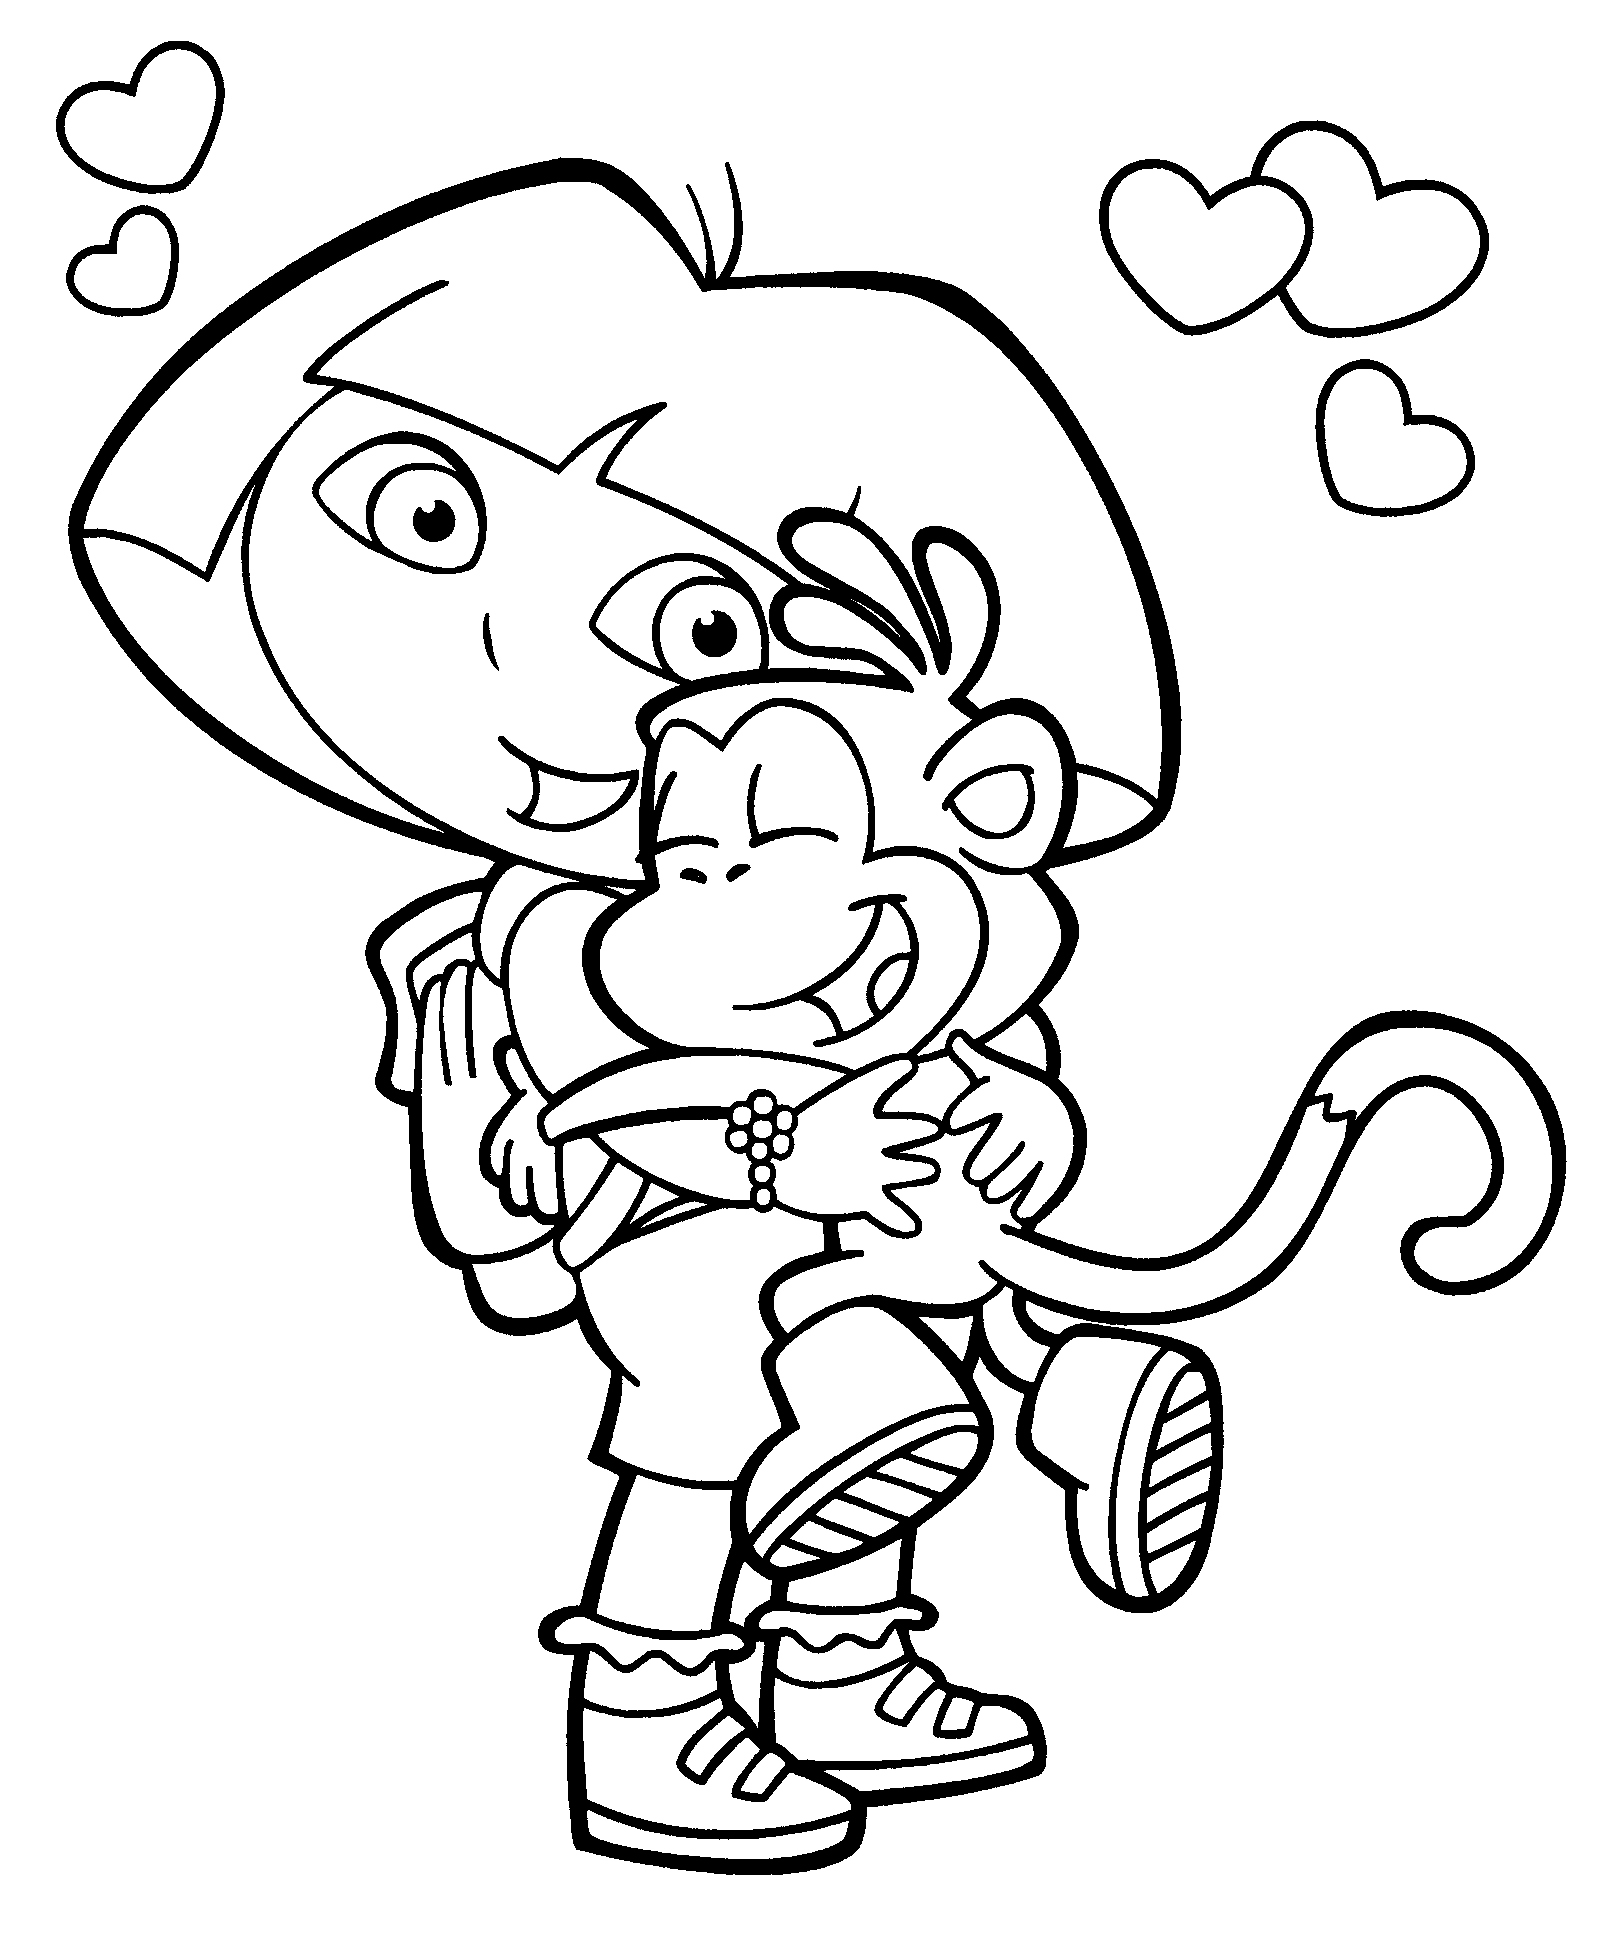 Download Nick Jr Coloring Pages 21 Print